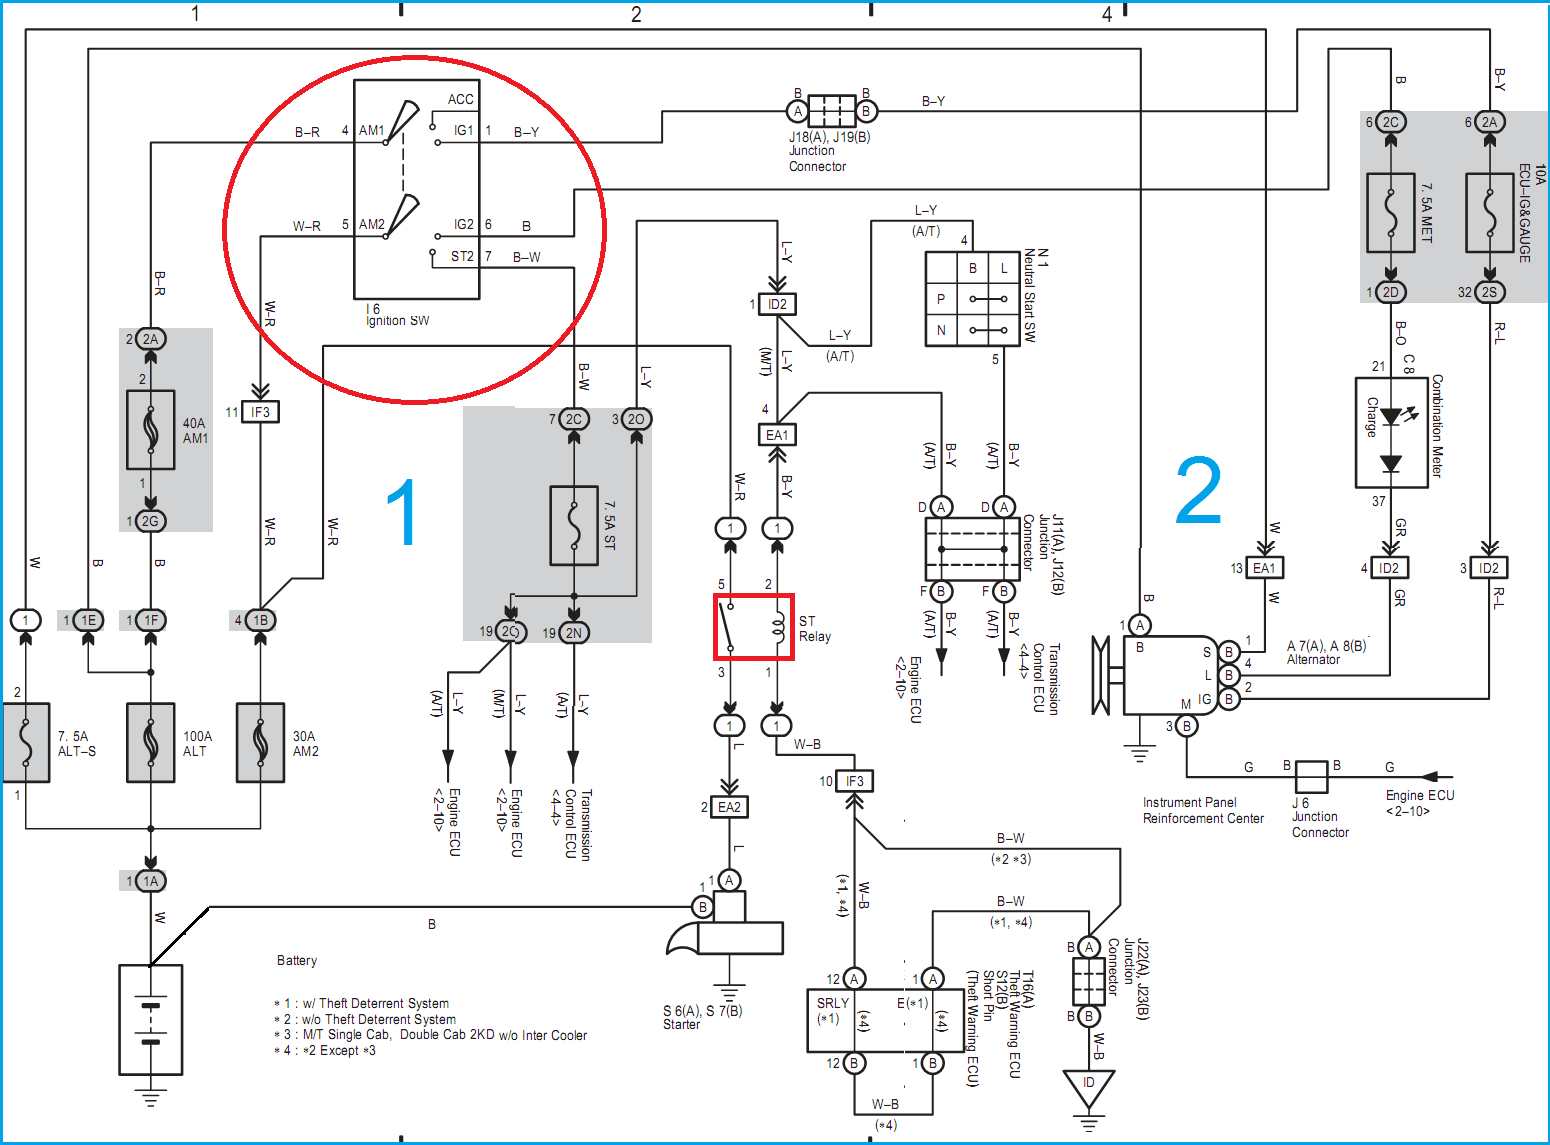 2kd Alternator Wiring Diagram